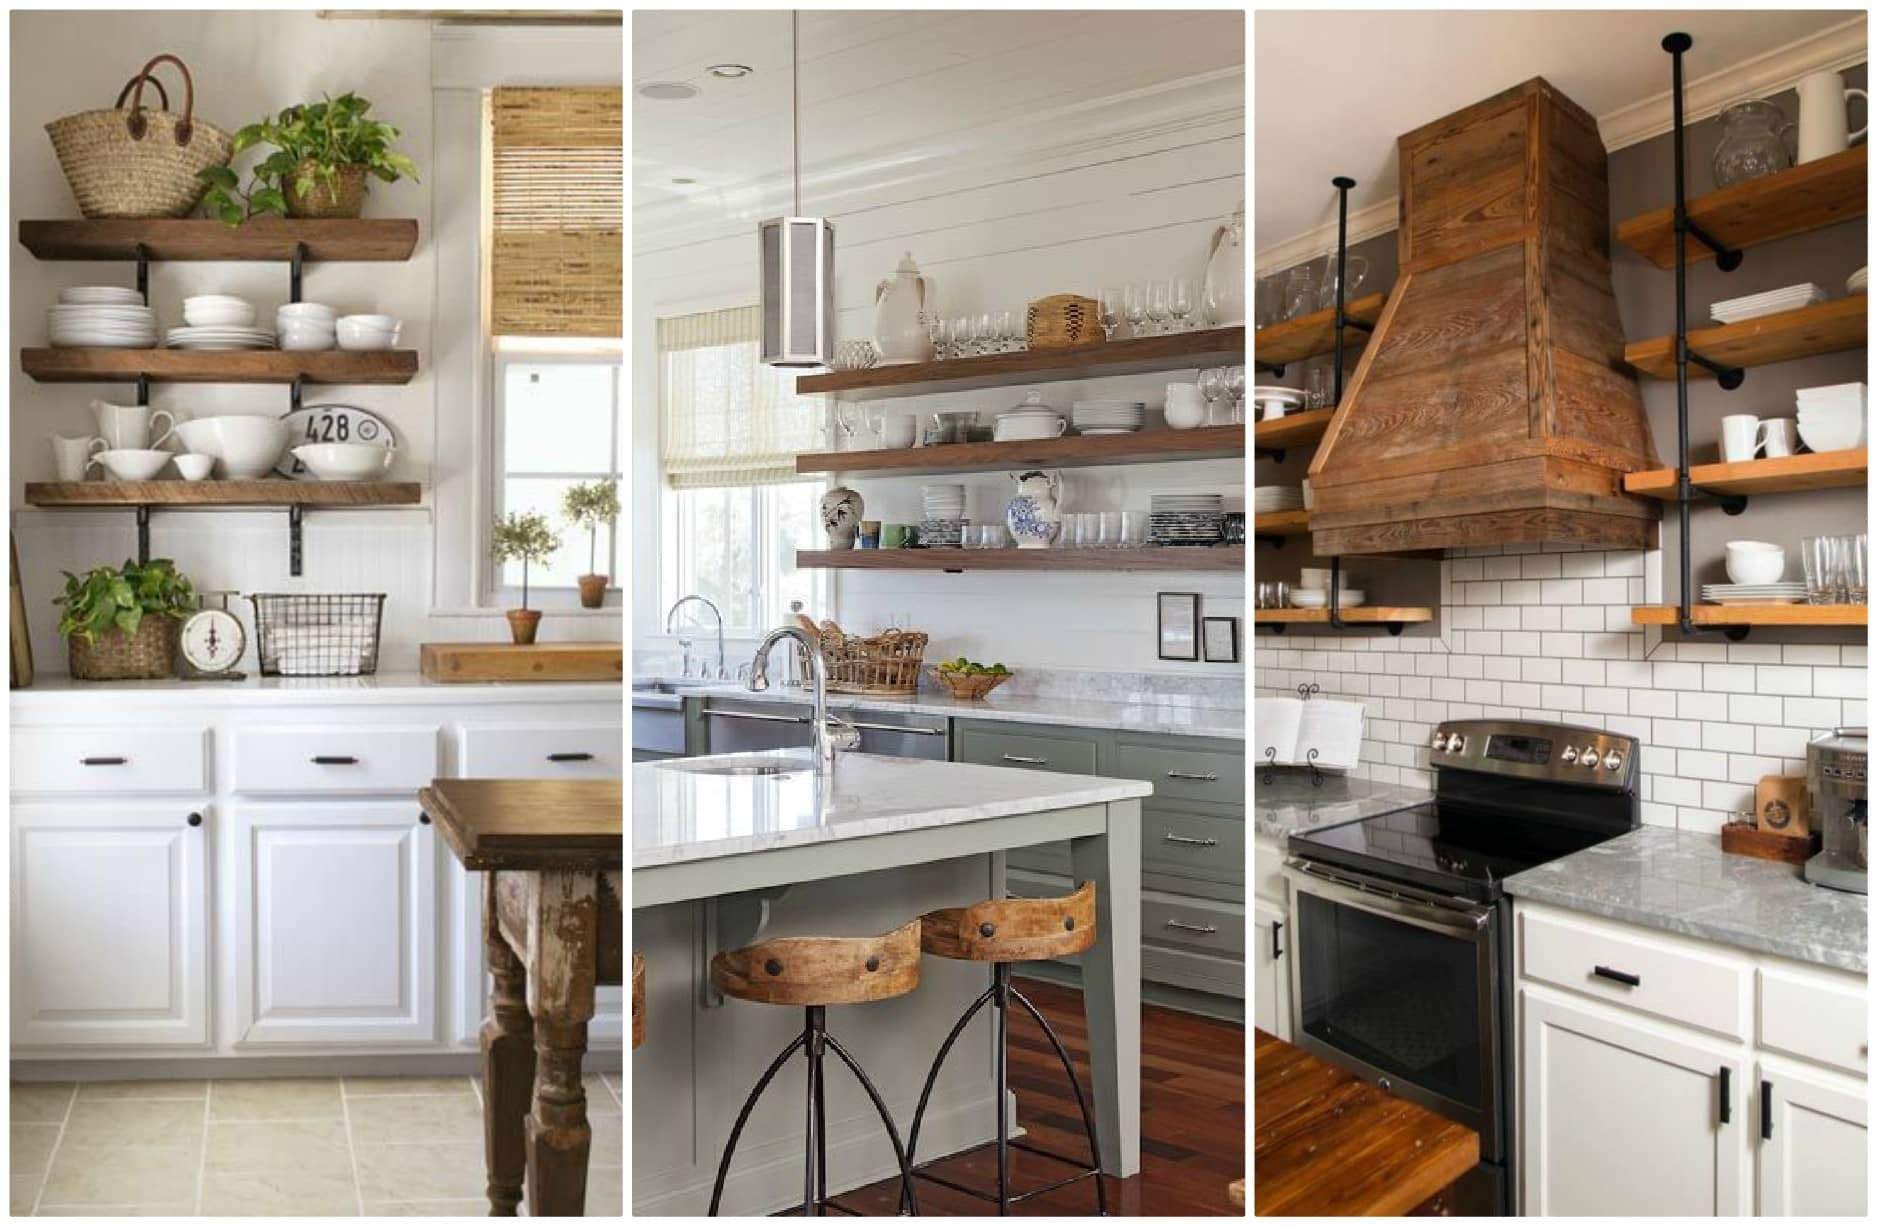 Designer tips on how to add warmth to a kitchen.